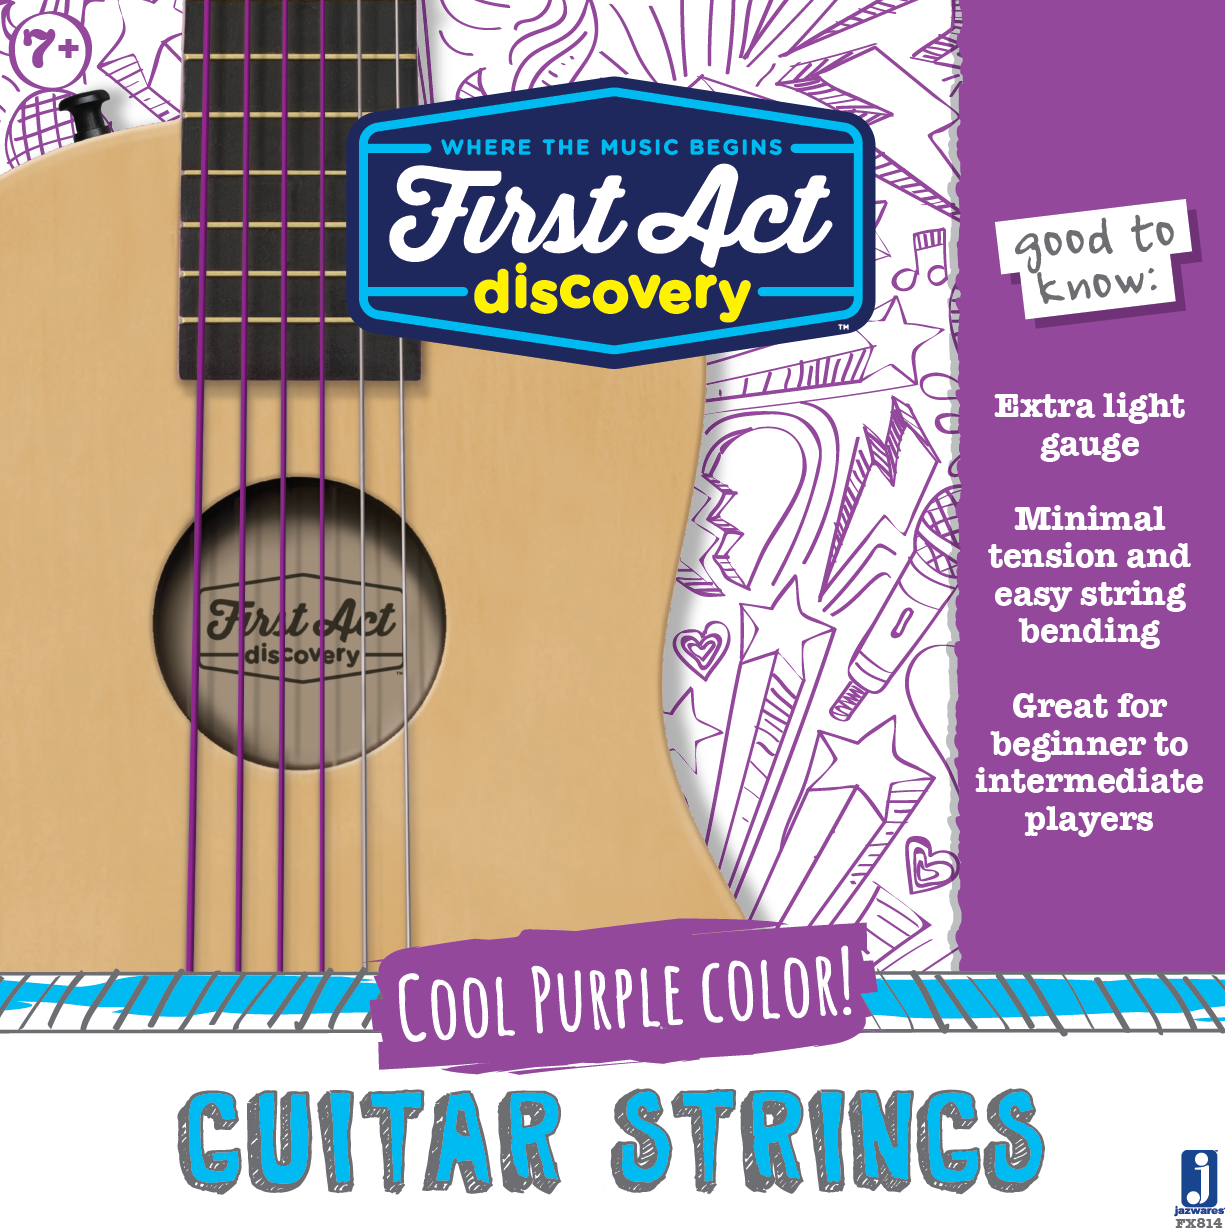 Acoustic Guitar Strings - Plum